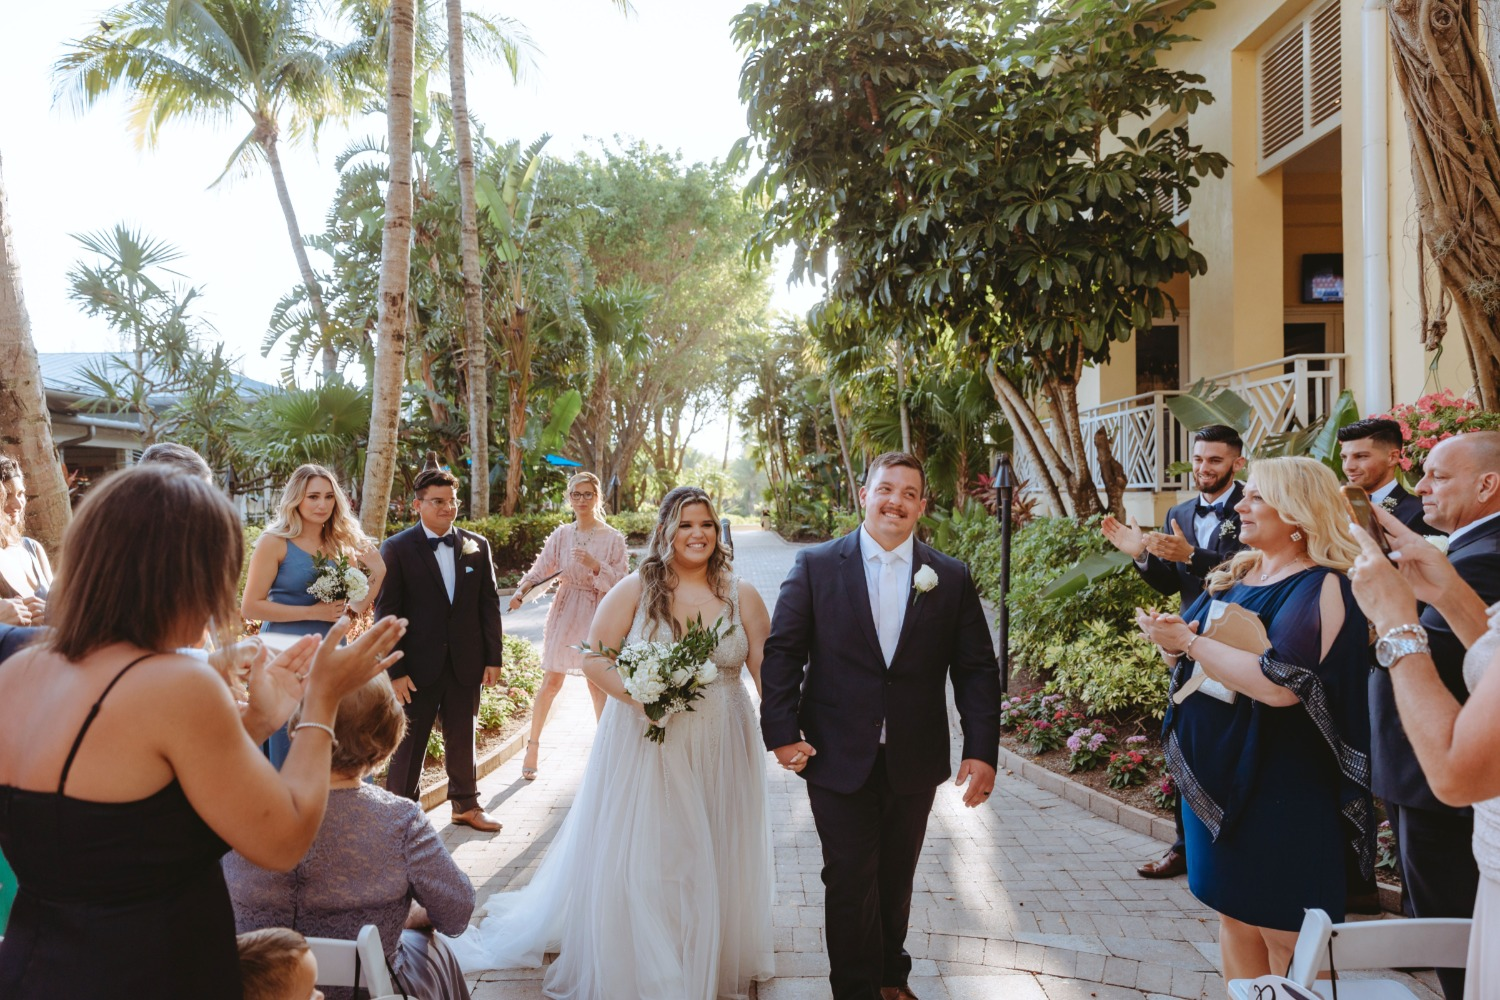 Hyatt Regency Coconut Point is the Perfect Venue and Here's Why